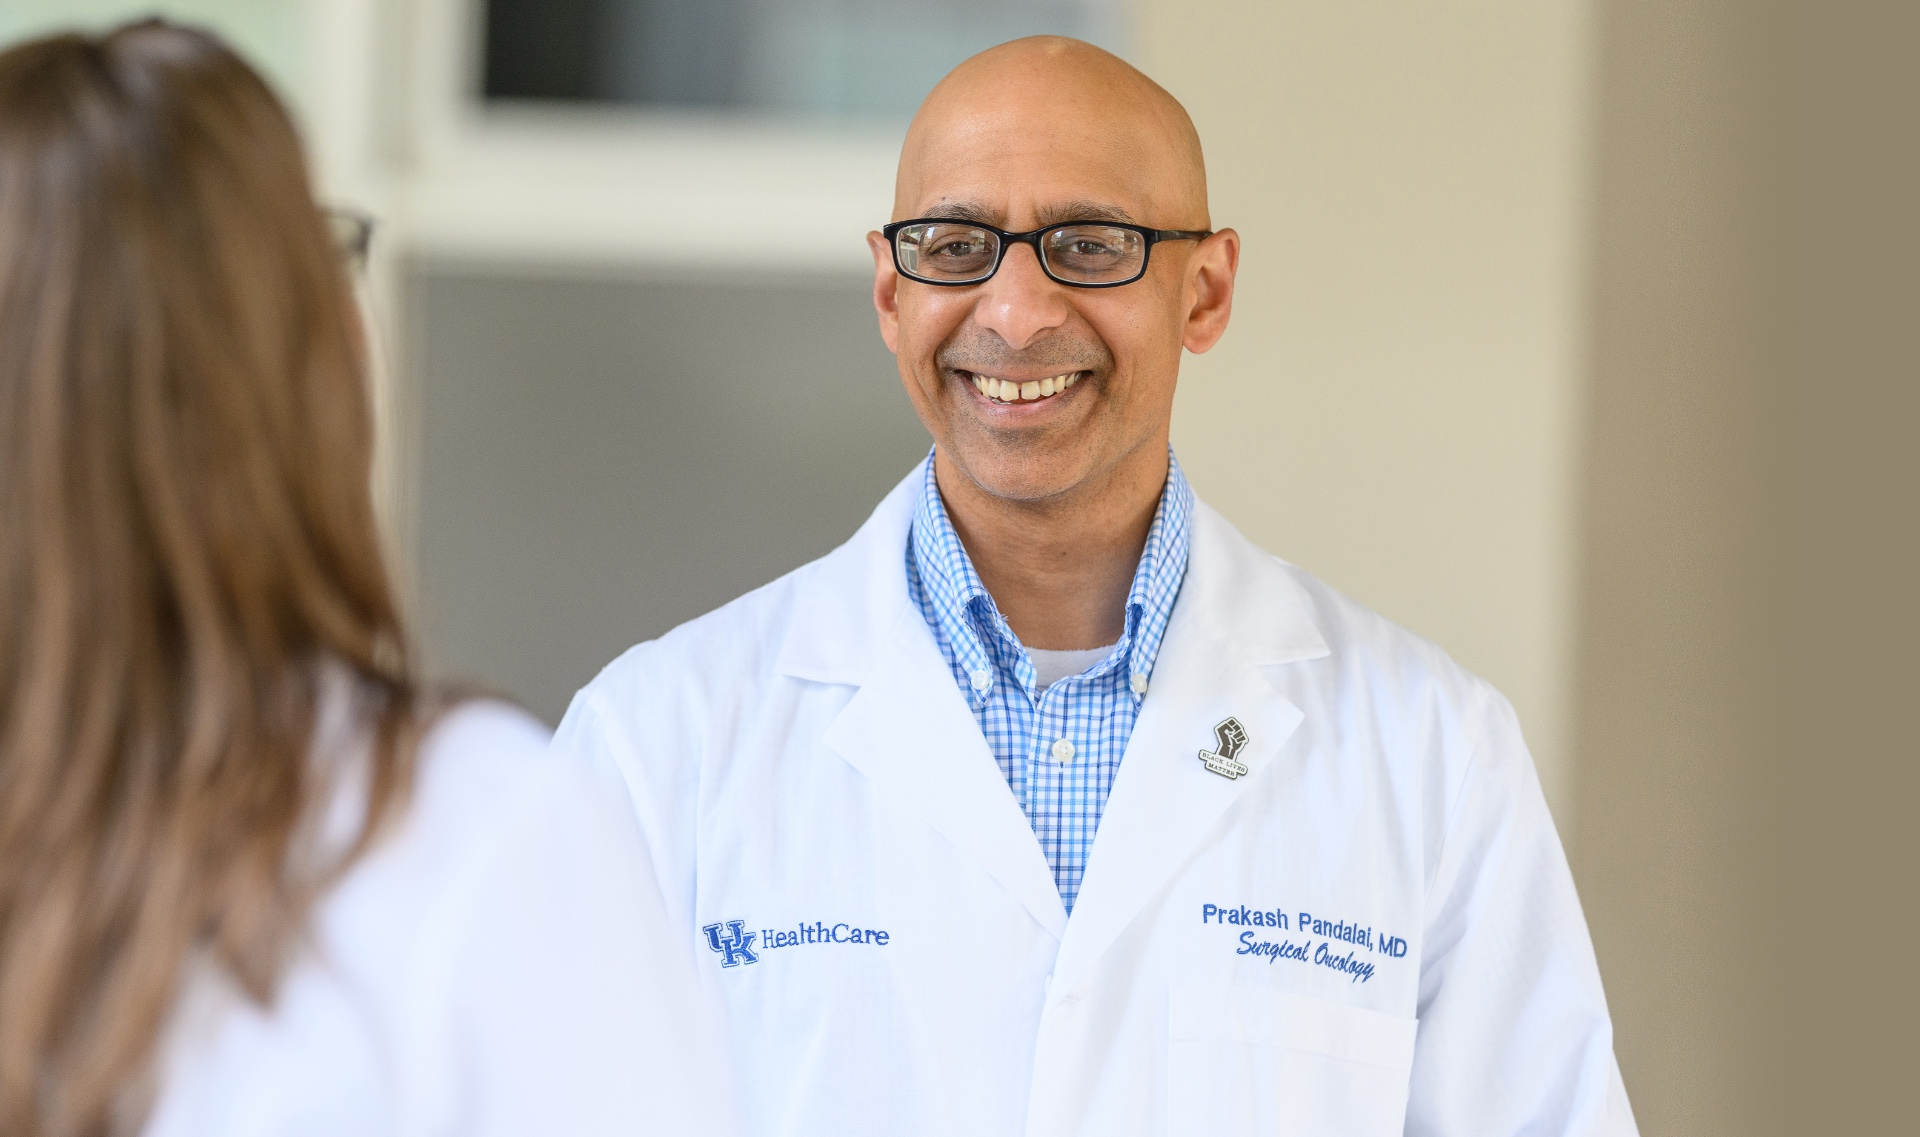 Dr. Prakash Pandalai, an older South Asian man with a bald head, smiles as he talks with a female colleague who has her back turned to the camera.